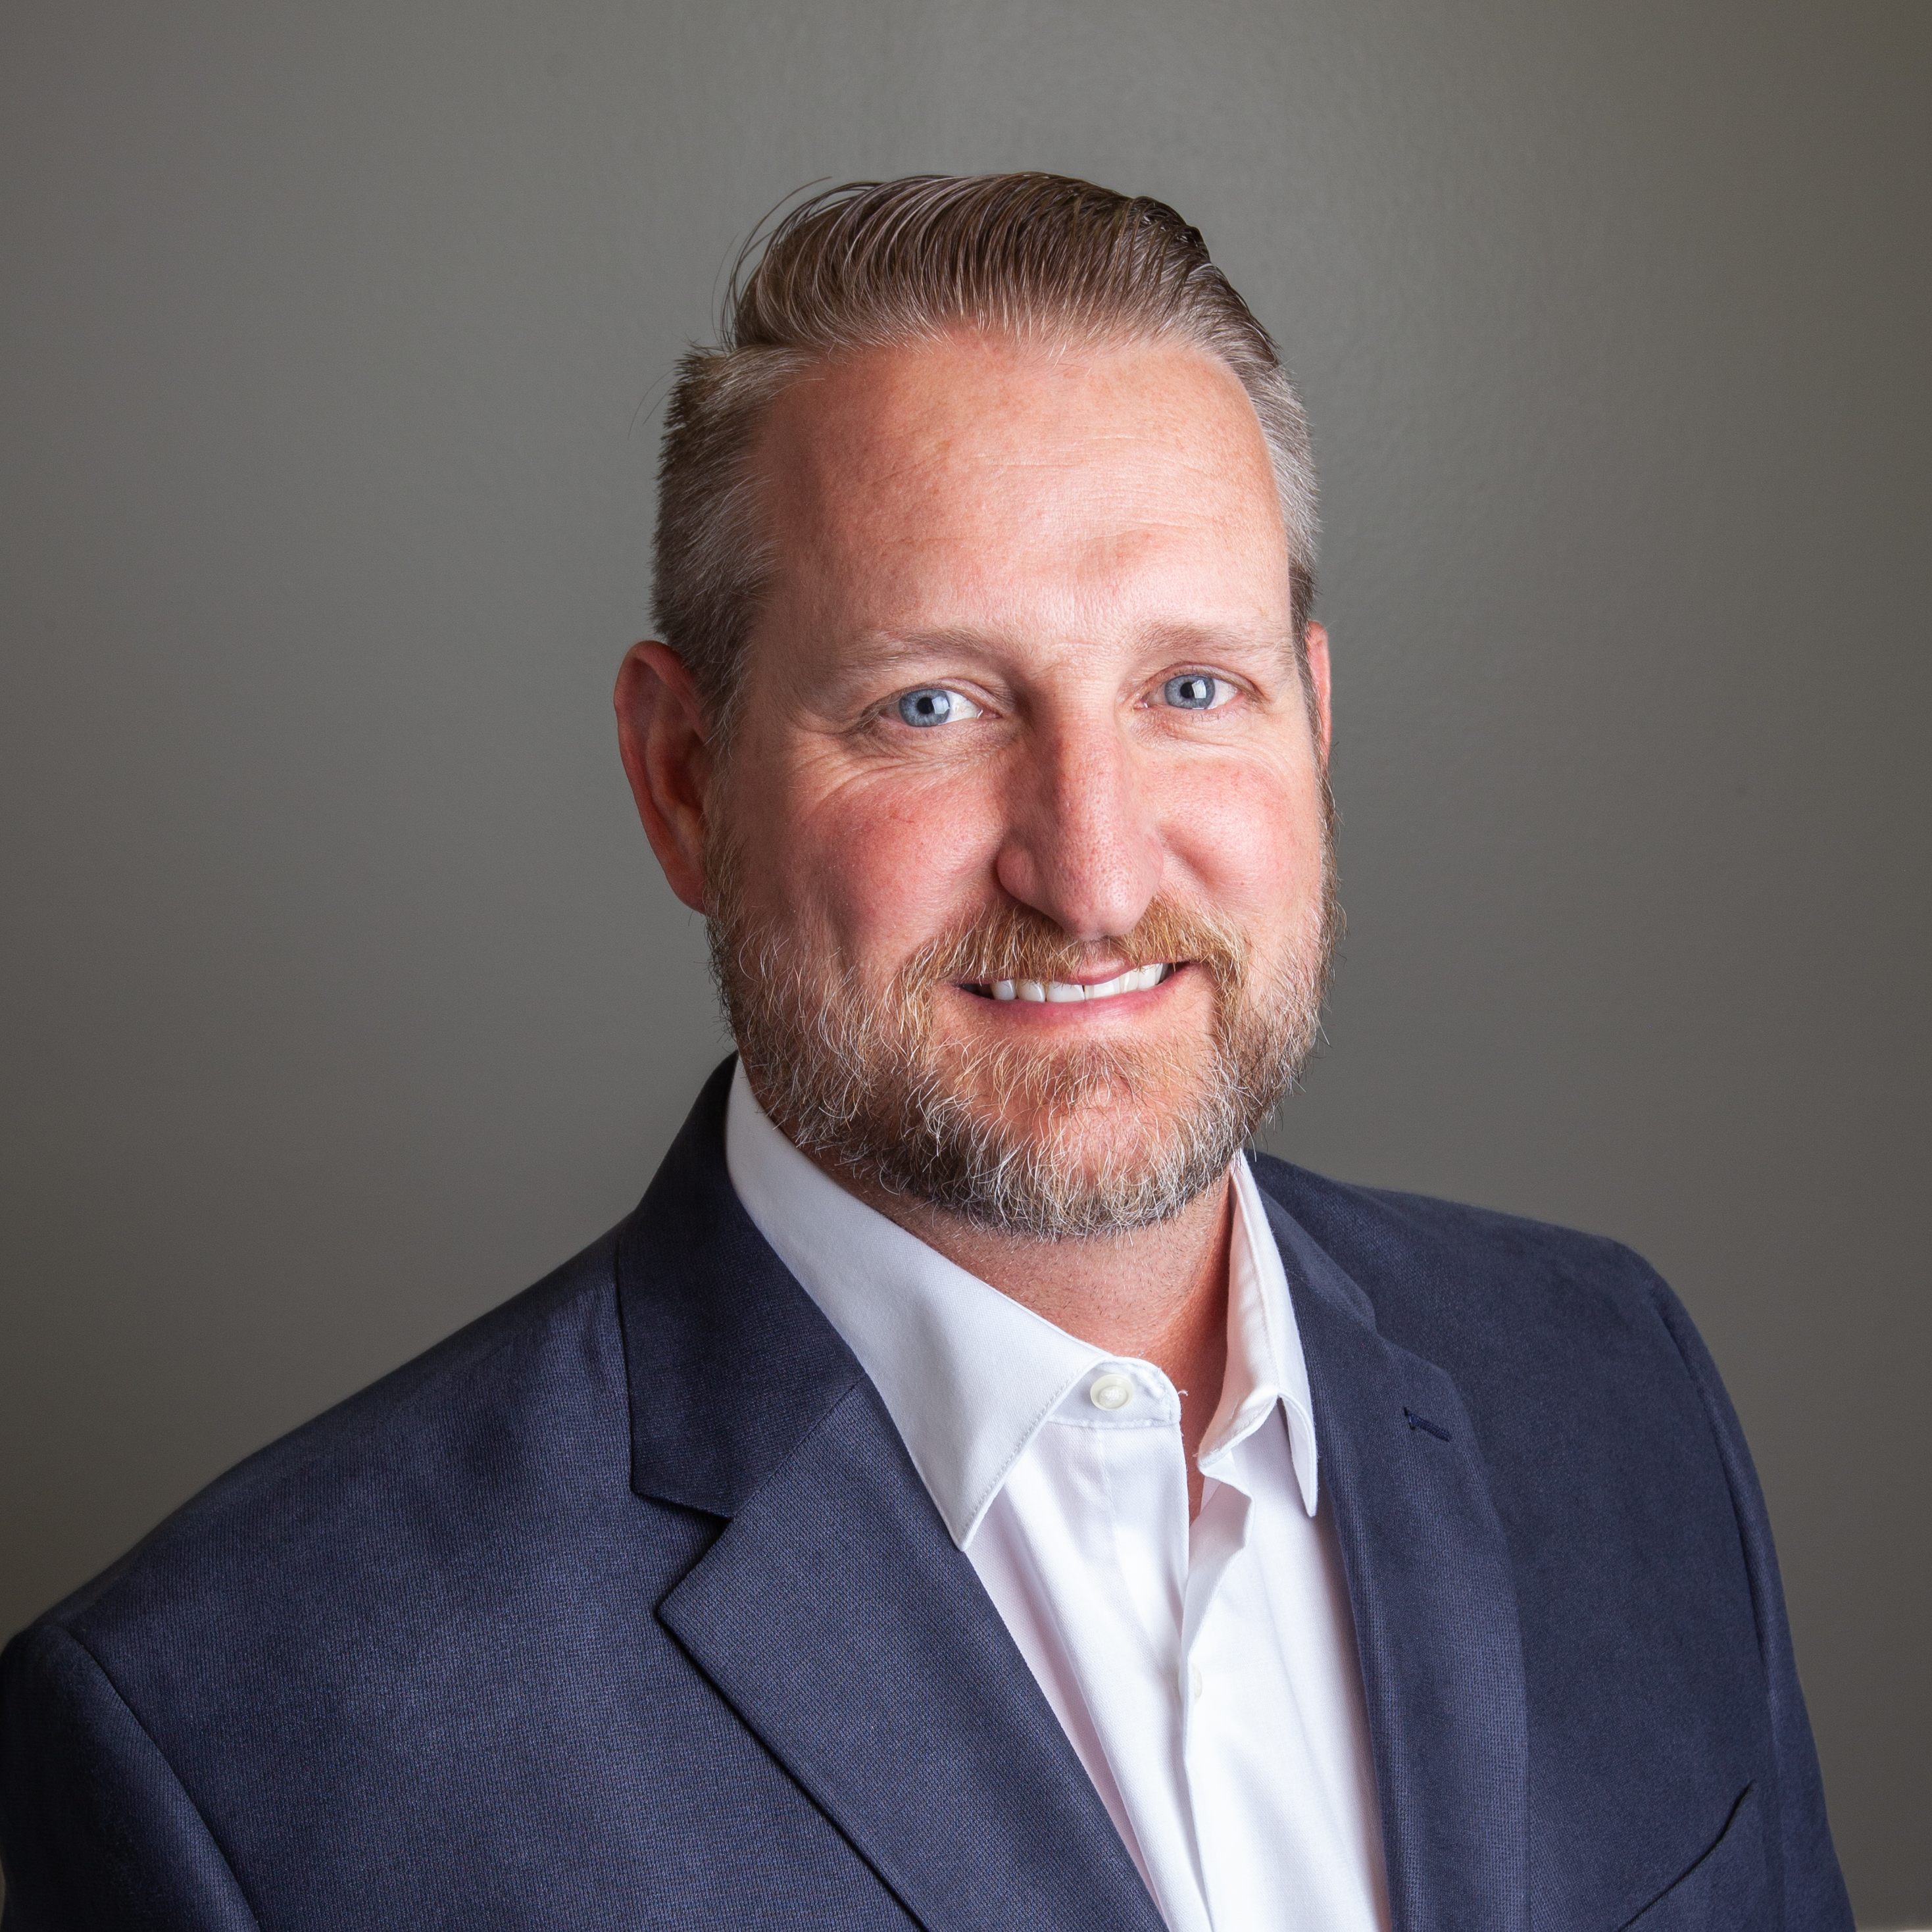 Search/Buy Homes with Realtor Clint Huhnke